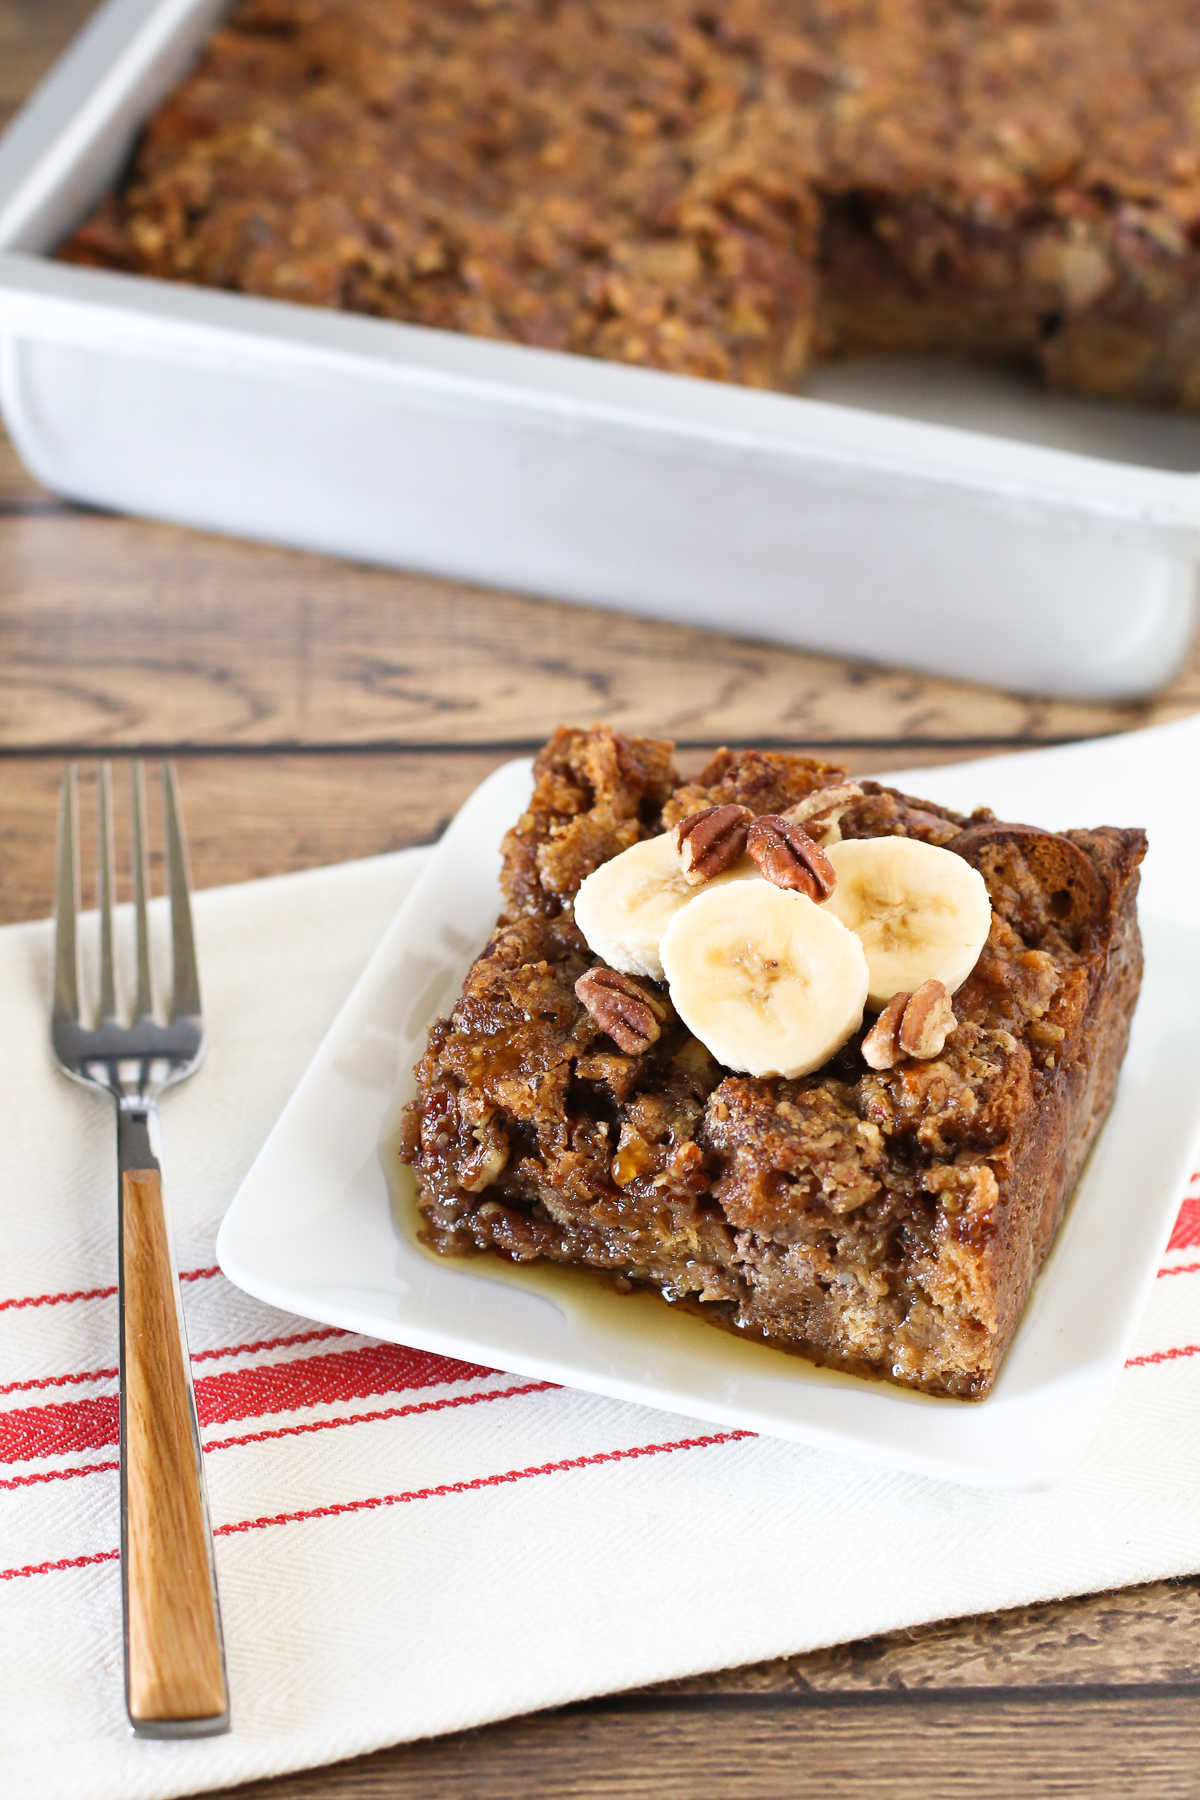 Gluten Free Vegan Banana Pecan Baked French Toast. Baked to perfection, this decadent breakfast is so moist and flavorful!